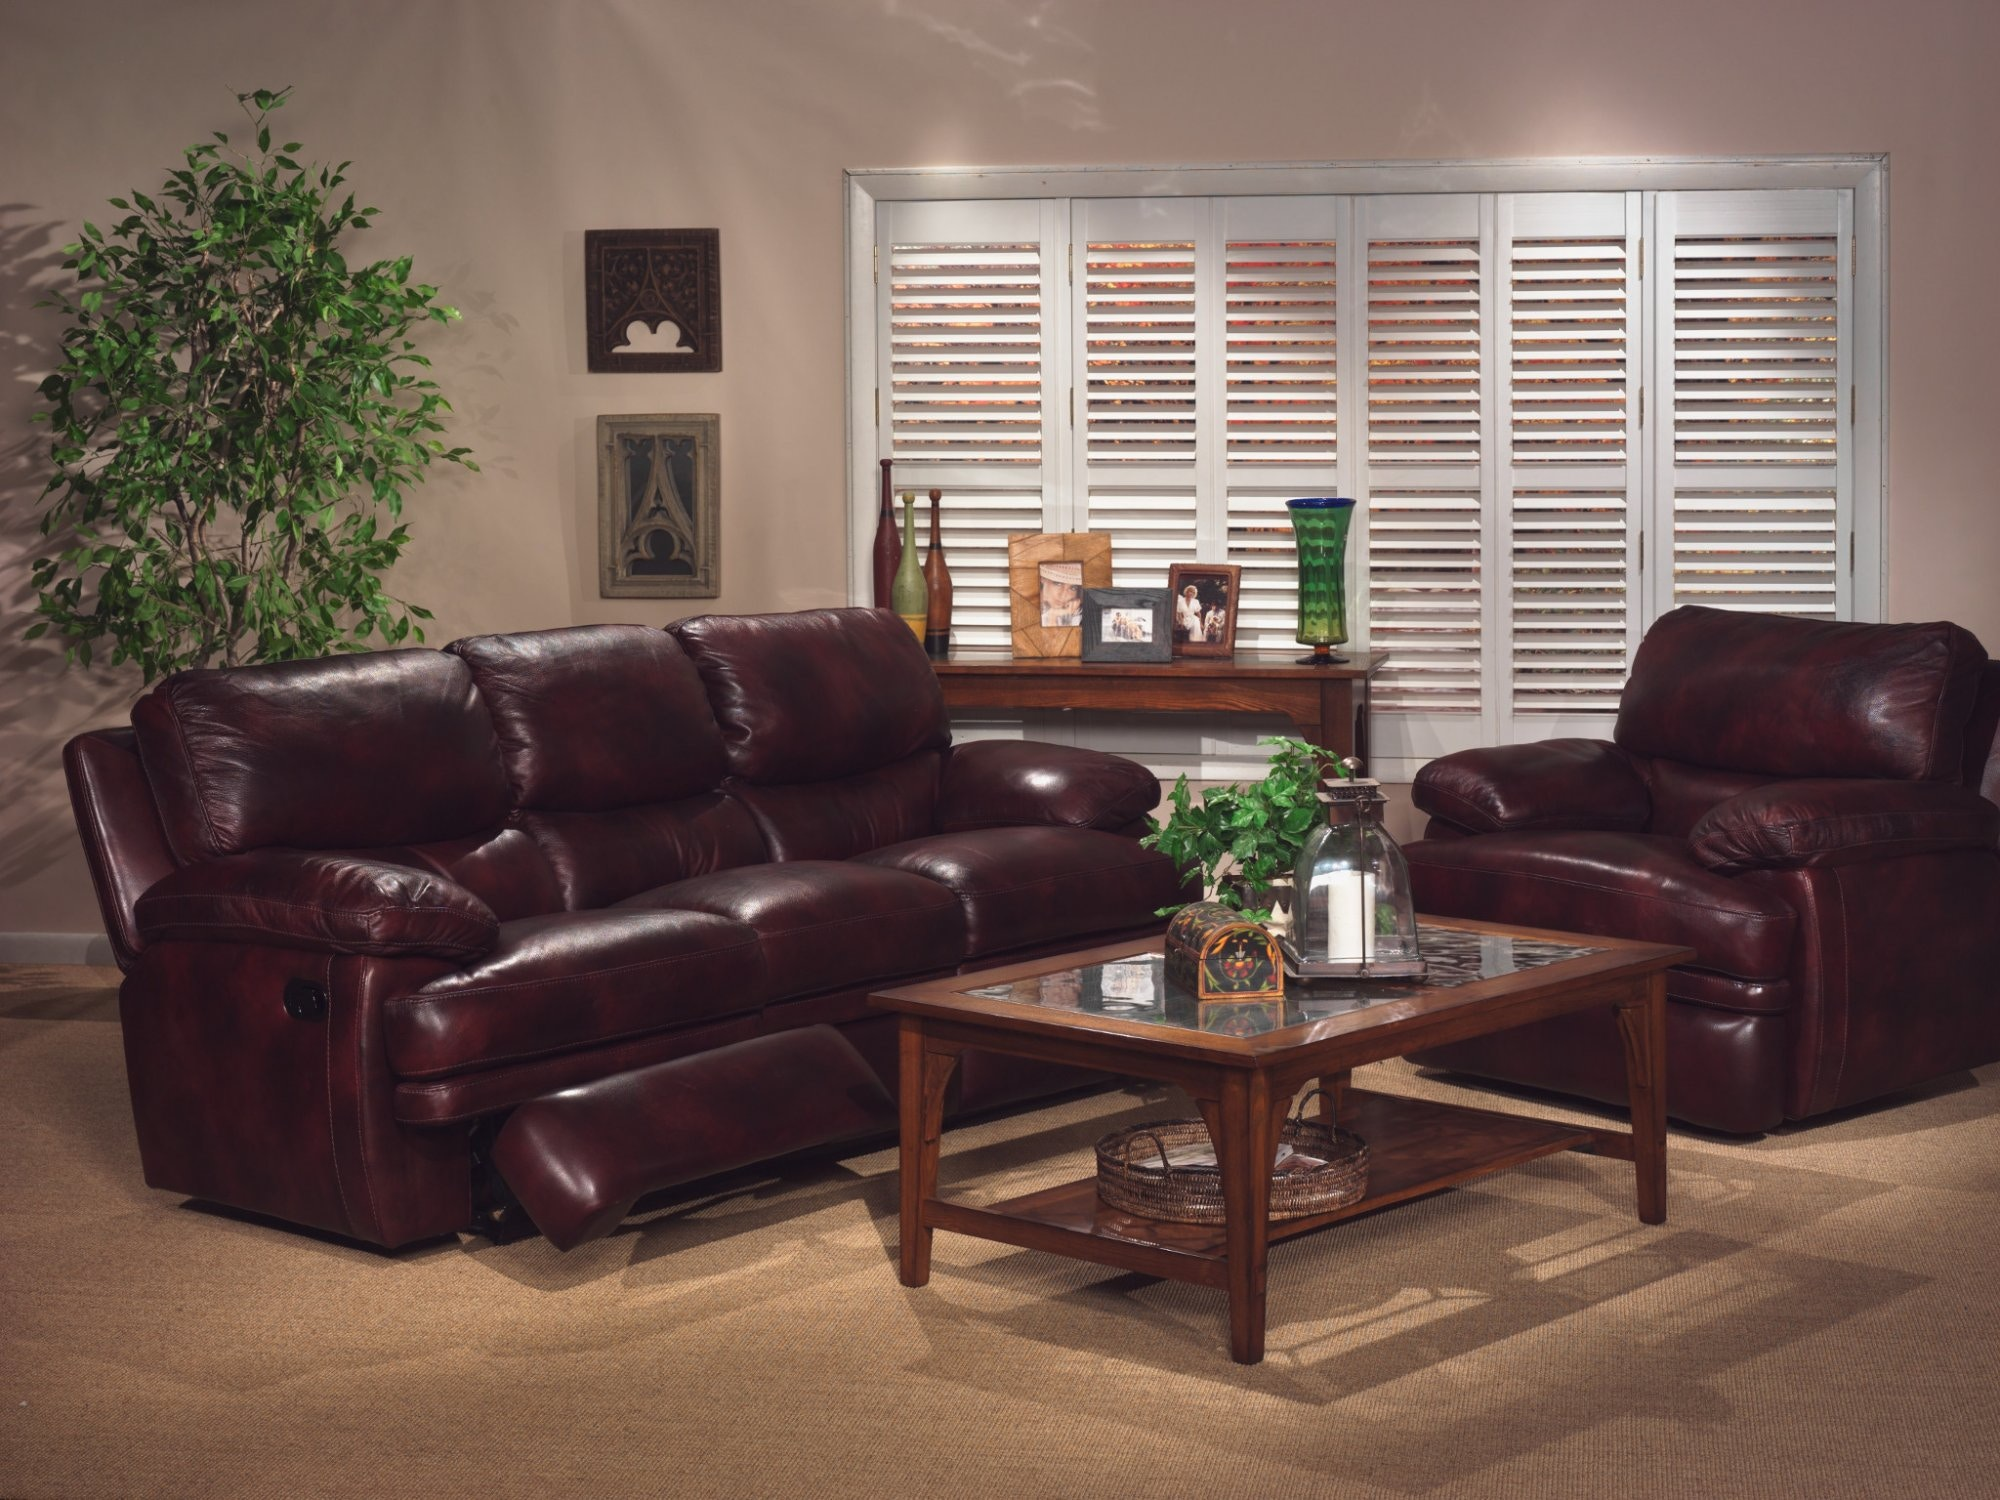 Genial Flexsteel Leather Reclining Sofa Without Chaise Footrests 1127 62